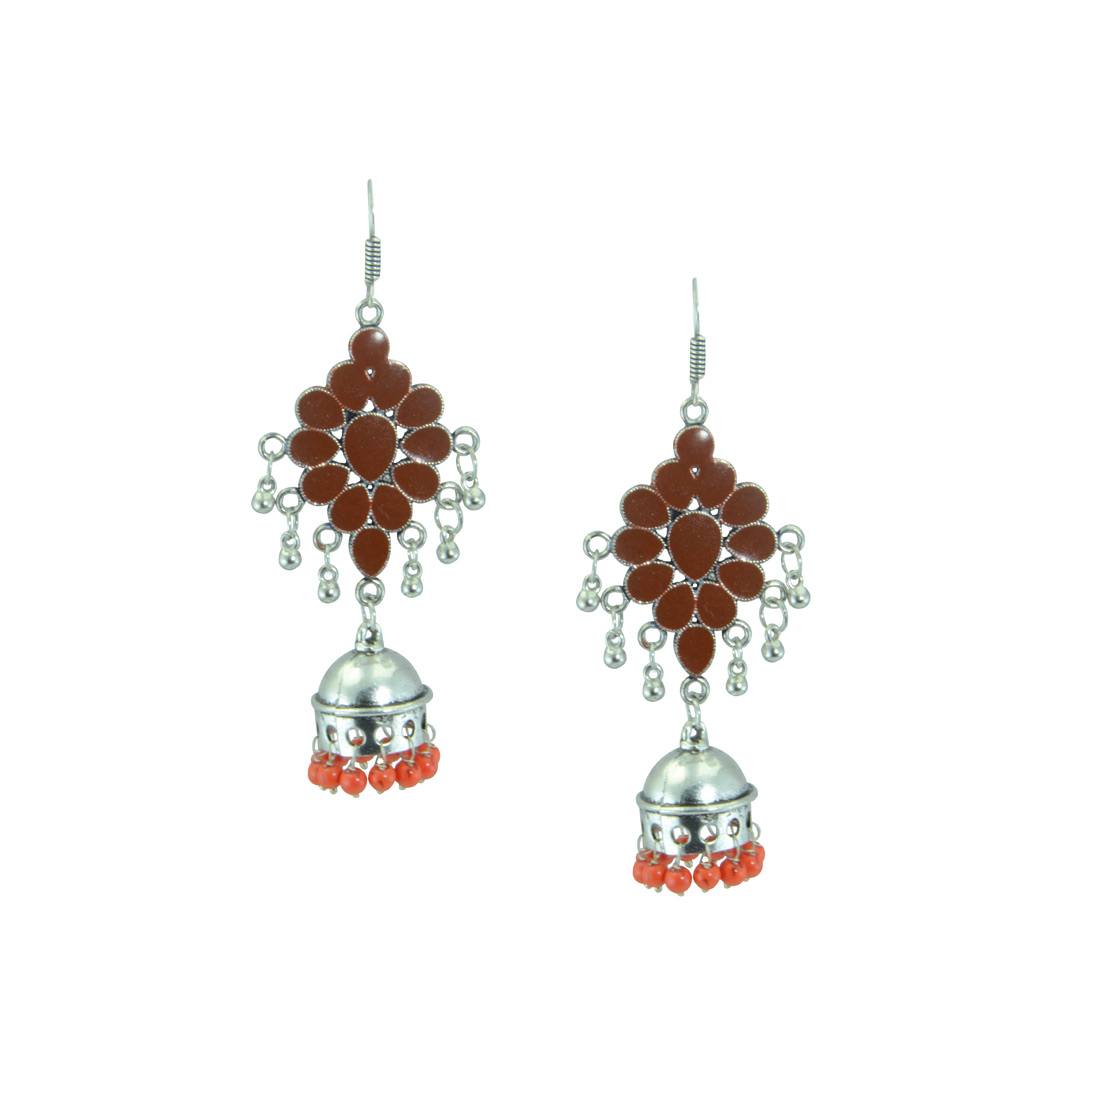 Oxidized Silver Plated Earring With Orange Multipe Pearls